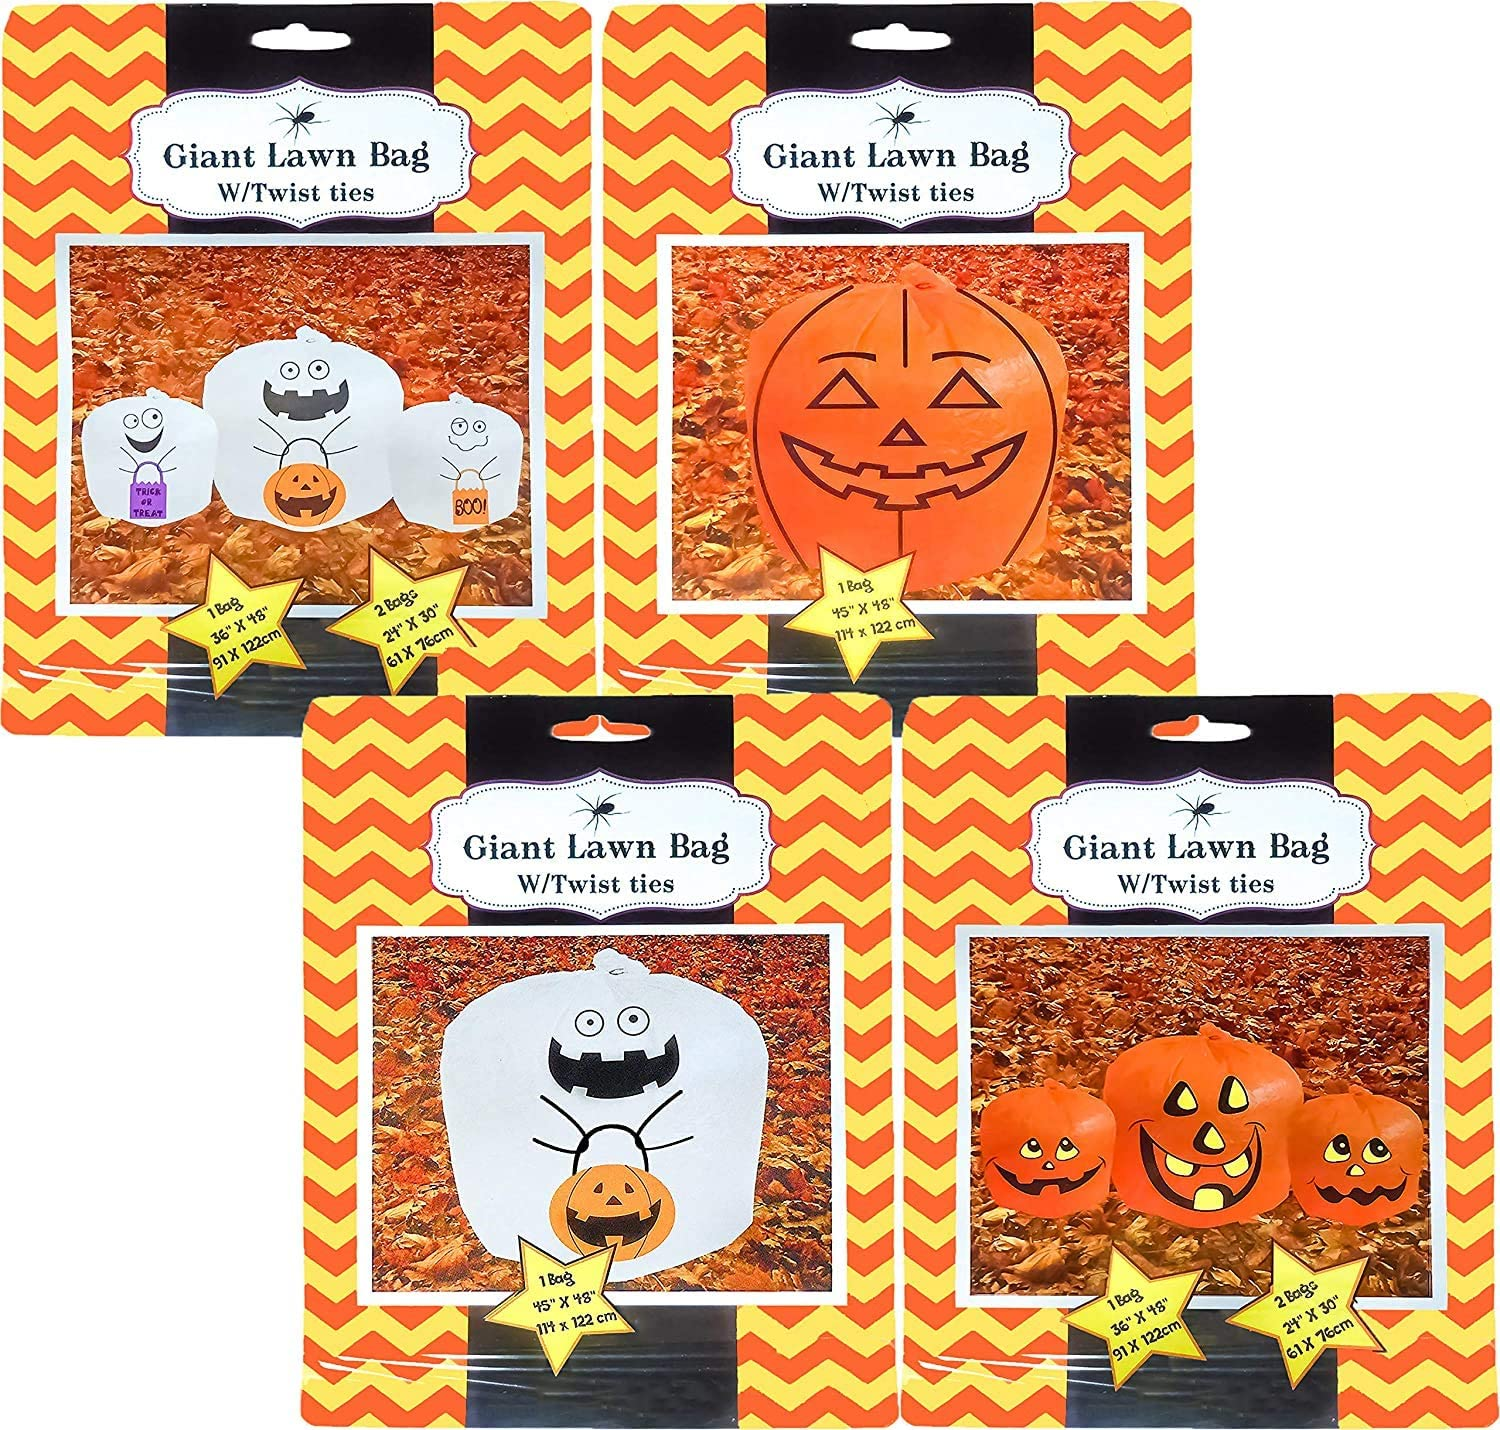 Giant Halloween Many popular brands Pumpkin Lawn Bag Surprise price with Different in Ties Twist Si